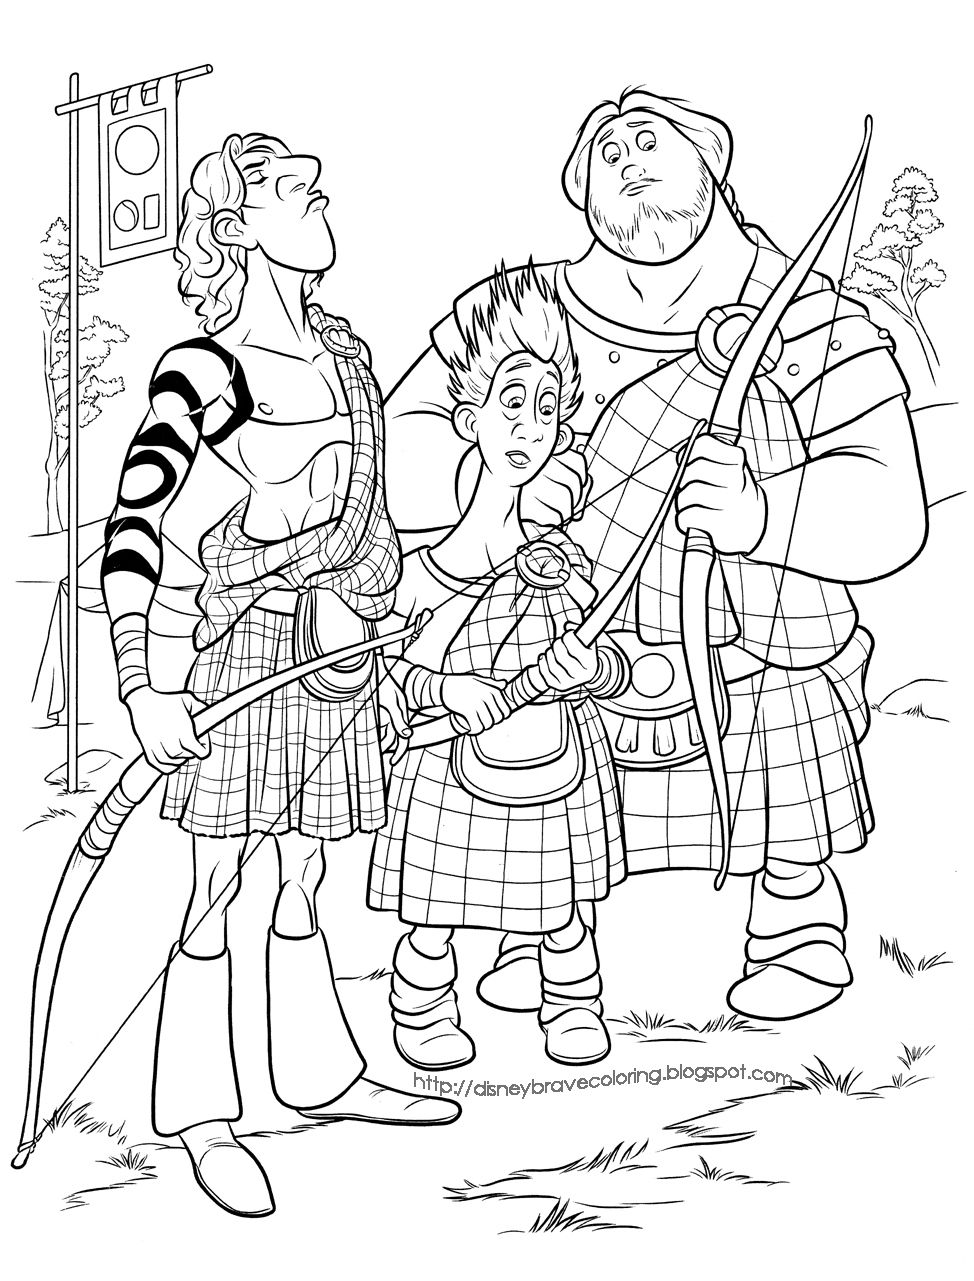 Brave Merida Coloring Pages Disney Coloring Pages Cartoon Coloring Pages Coloring Books